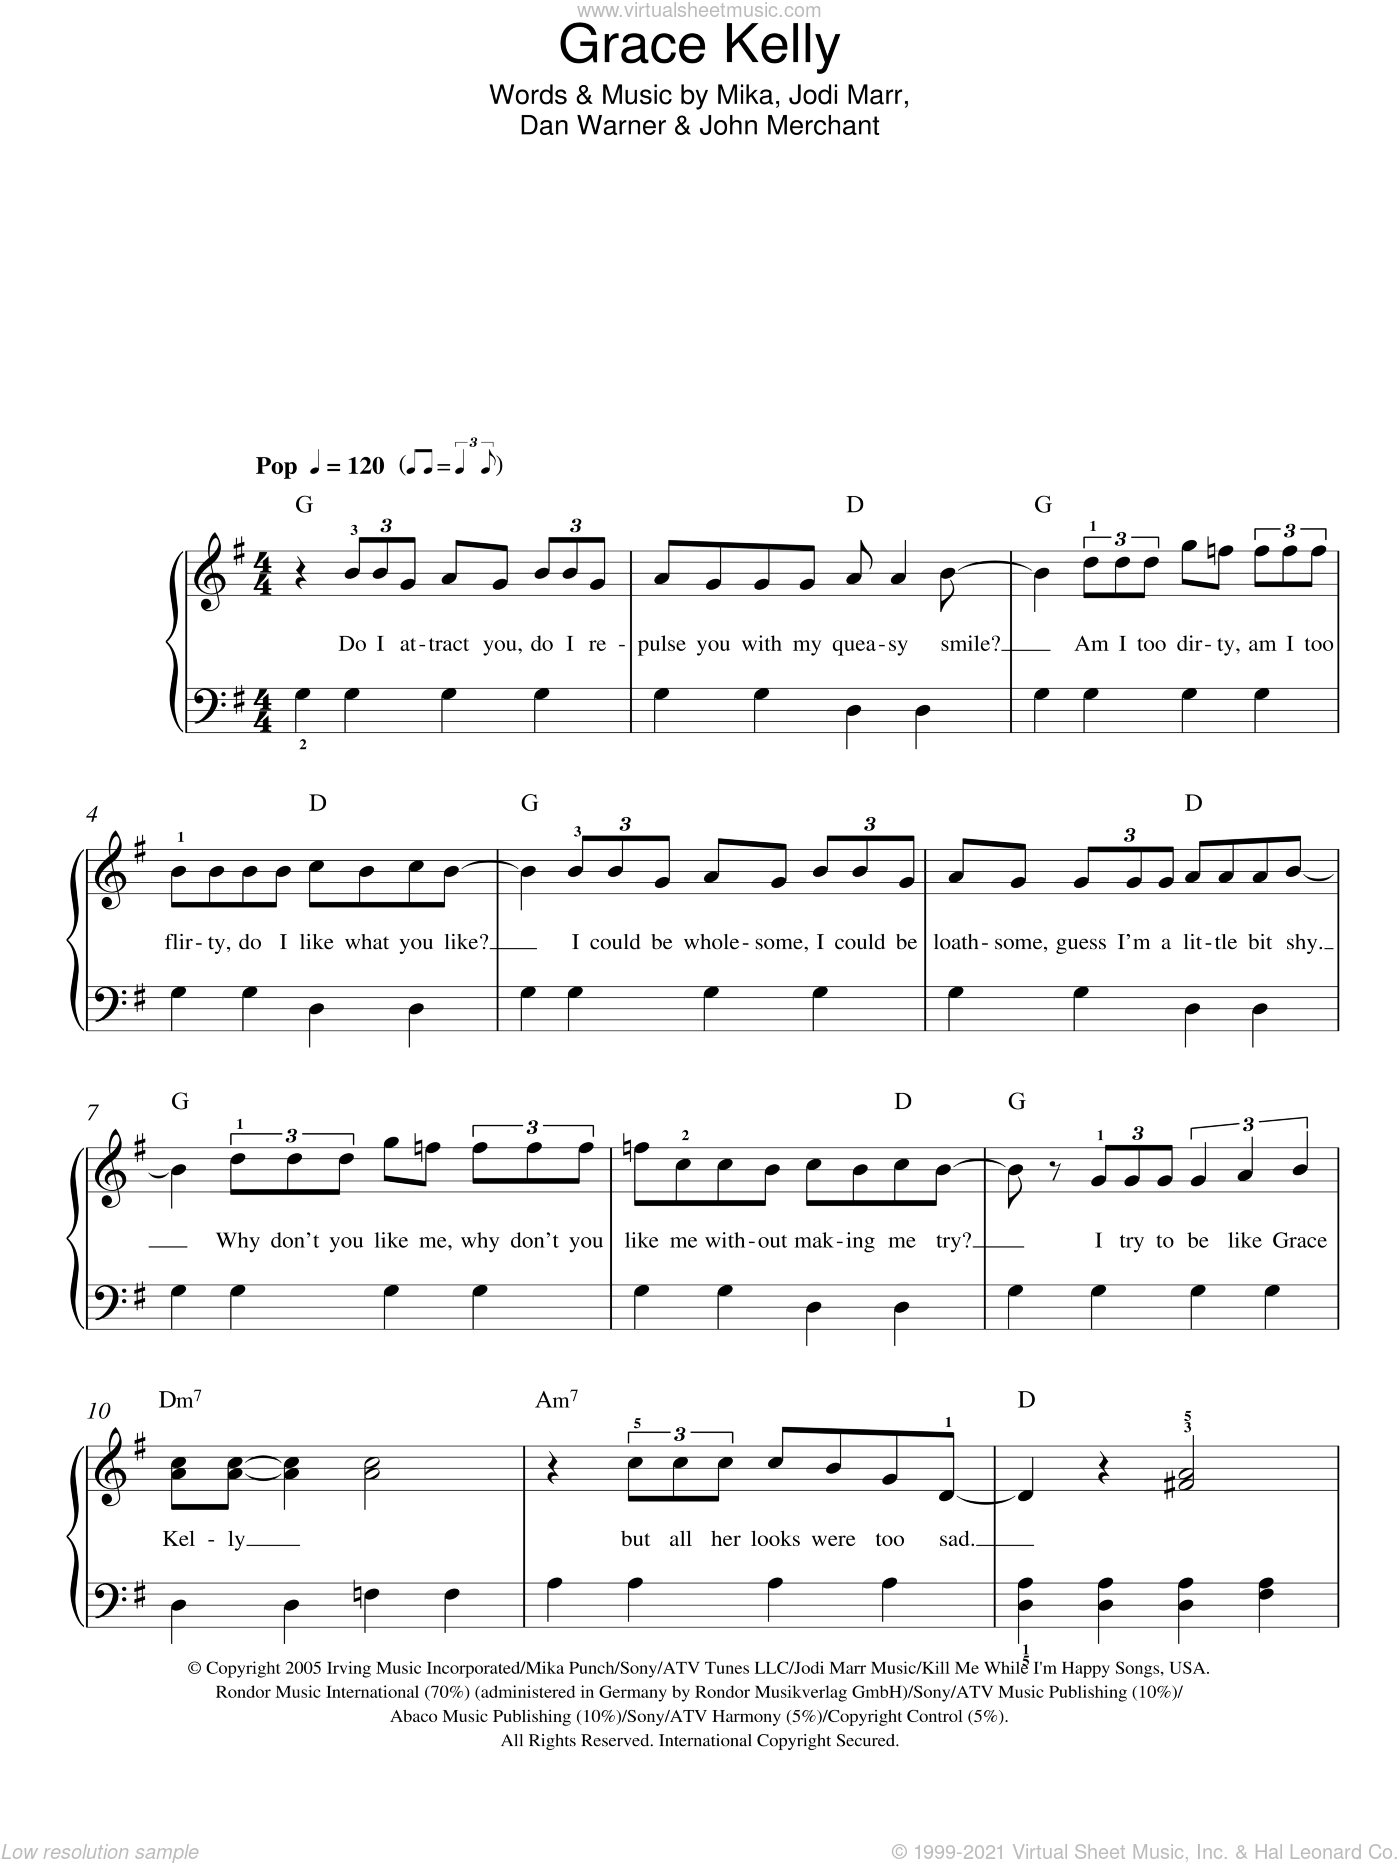 Grace Kelly sheet music for piano solo (chords) by John Merchant